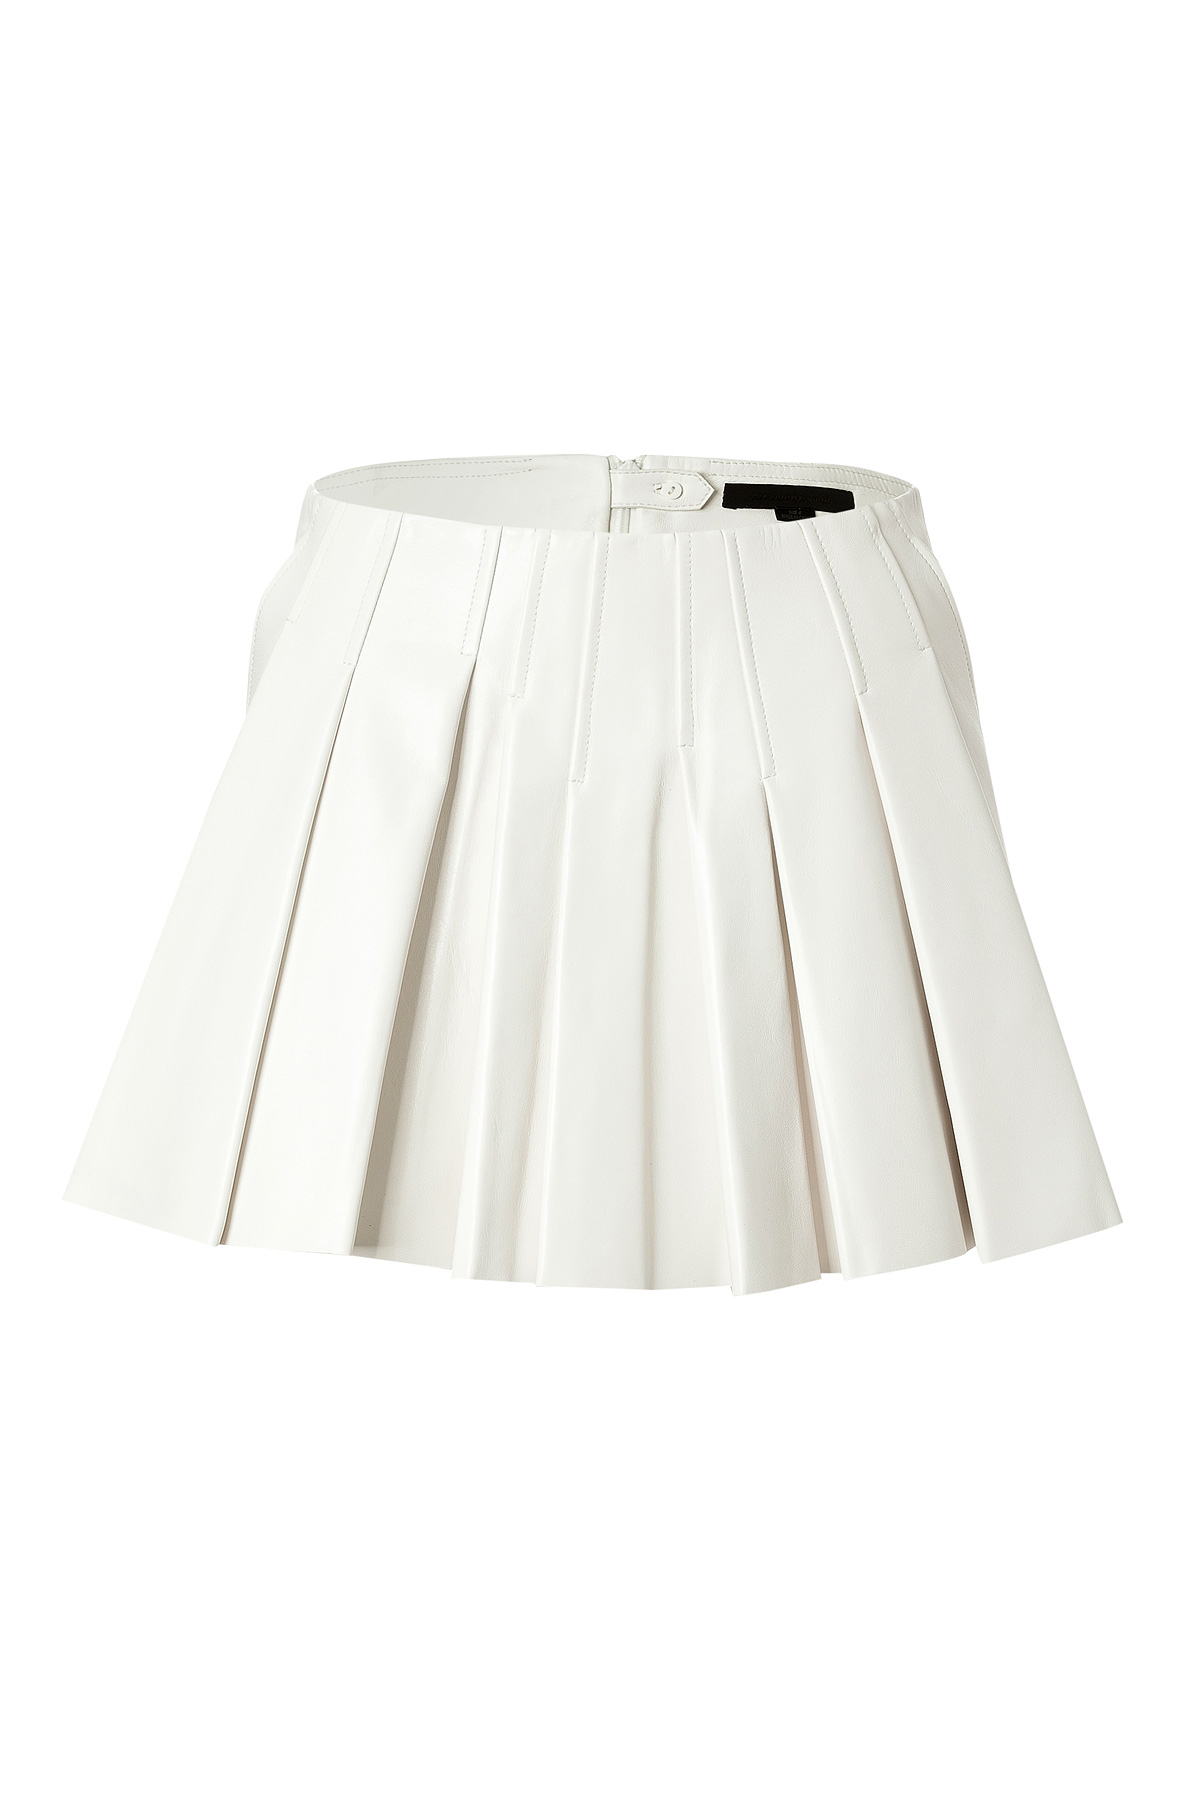 wang leather pleated skirt white in white lyst